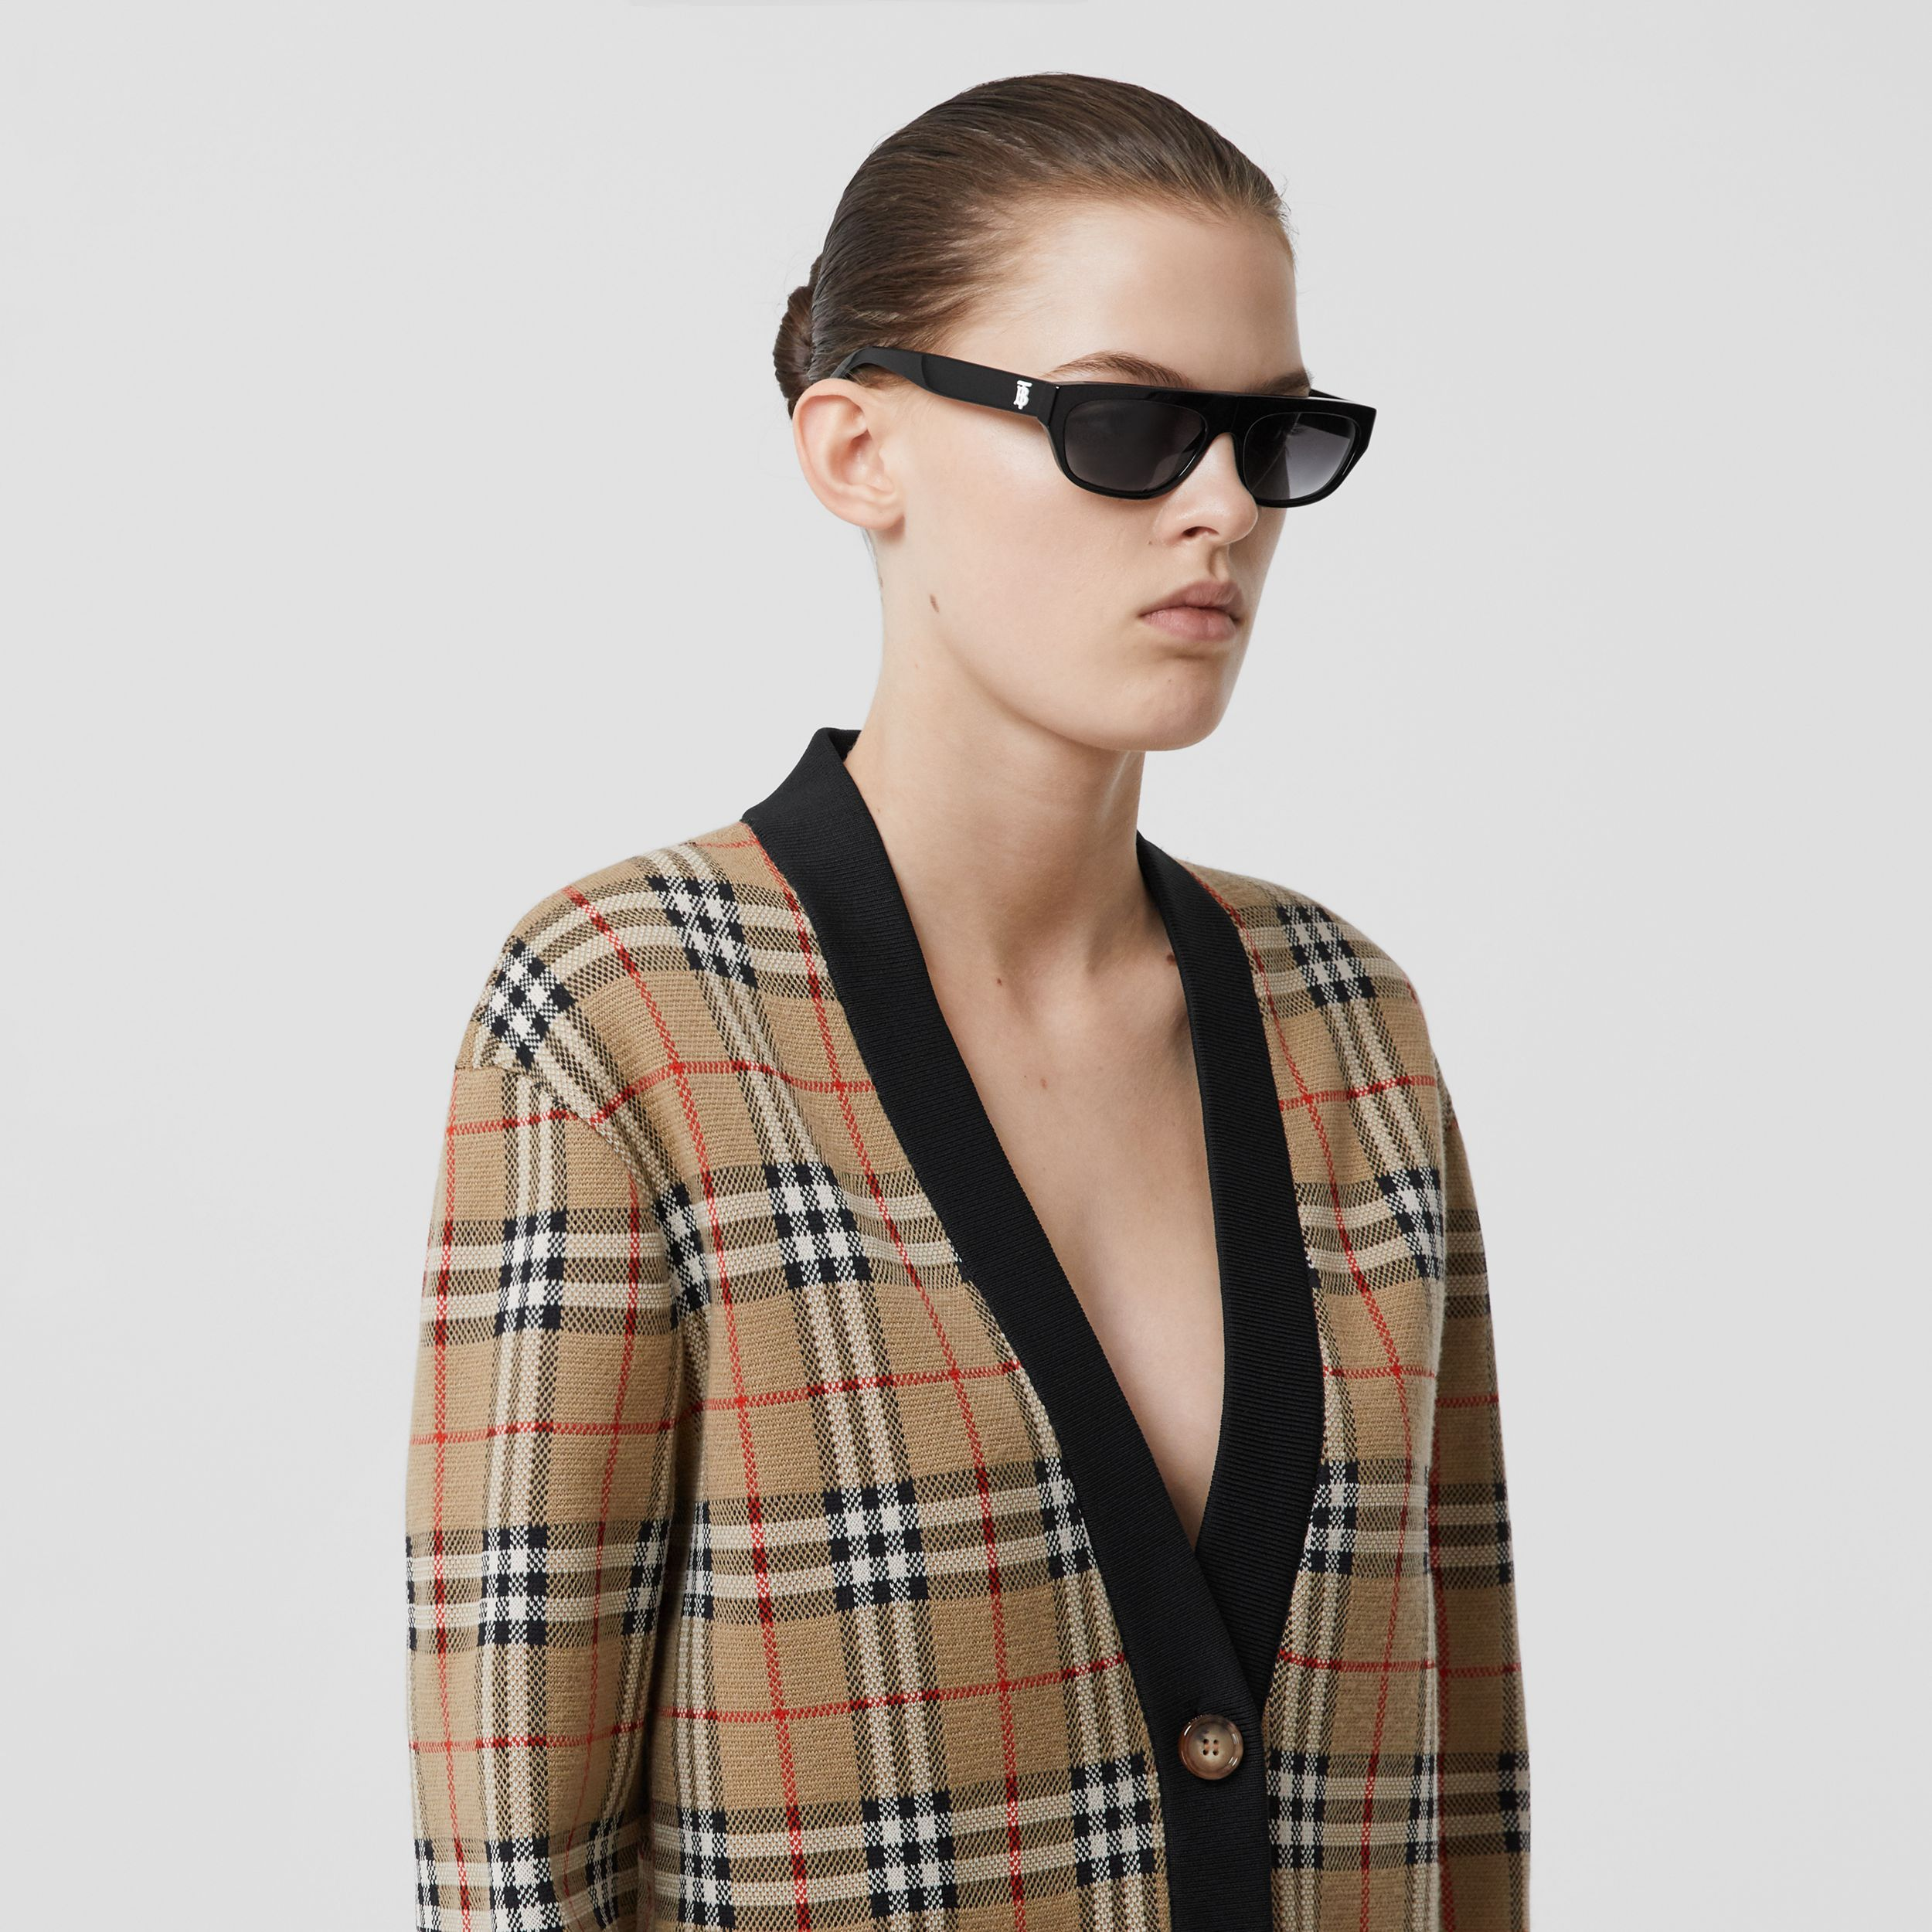 Vintage Check Merino Wool Blend Jacquard Cardigan in Archive Beige - Women | Burberry Canada - 2